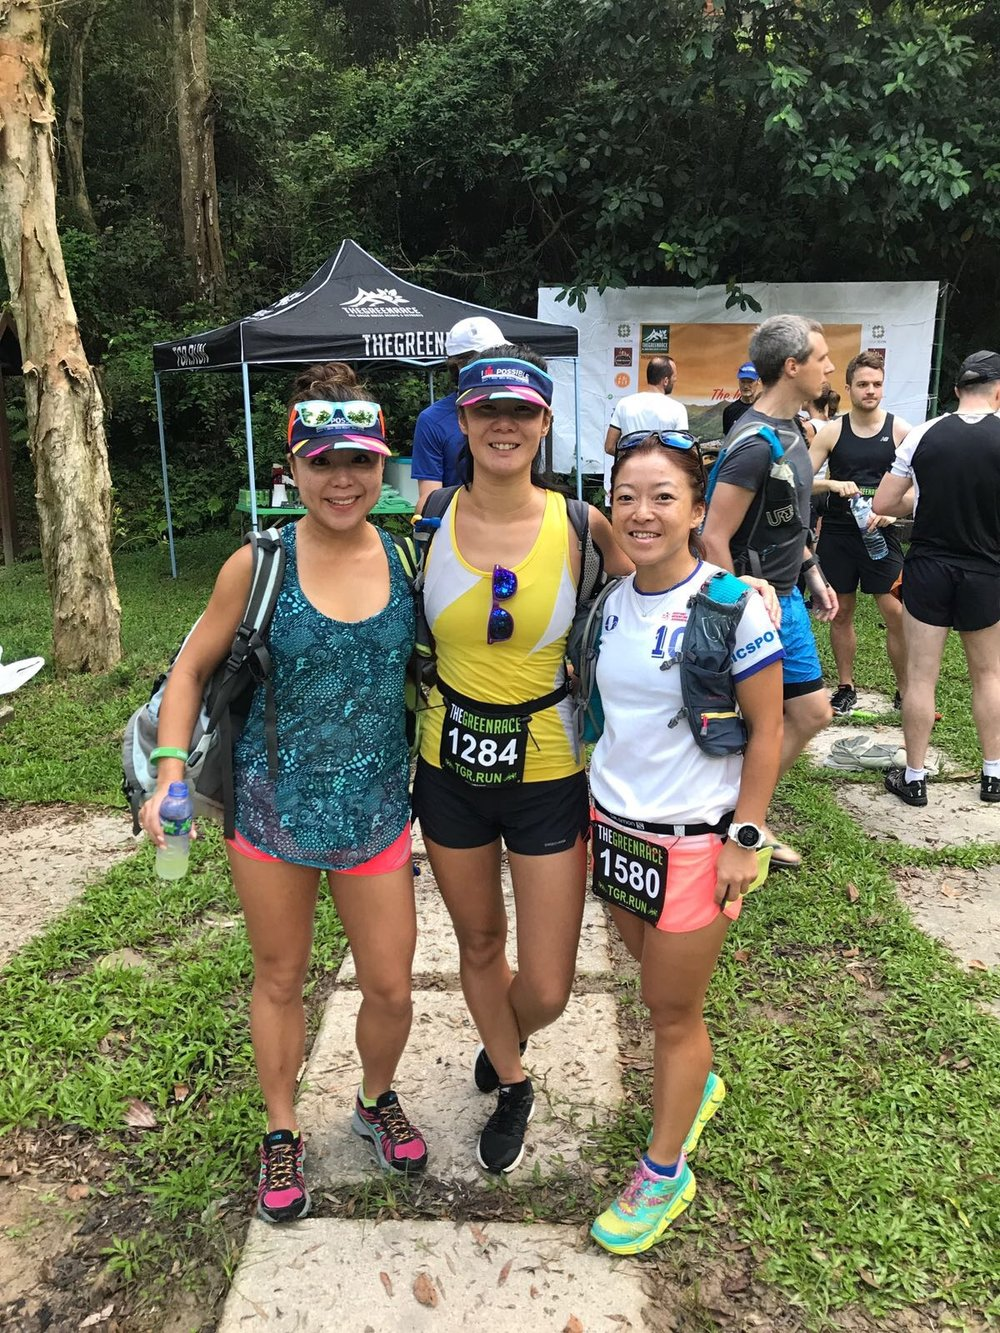 Josie farewell race is 30k mountain marathon with Janice and Gigi